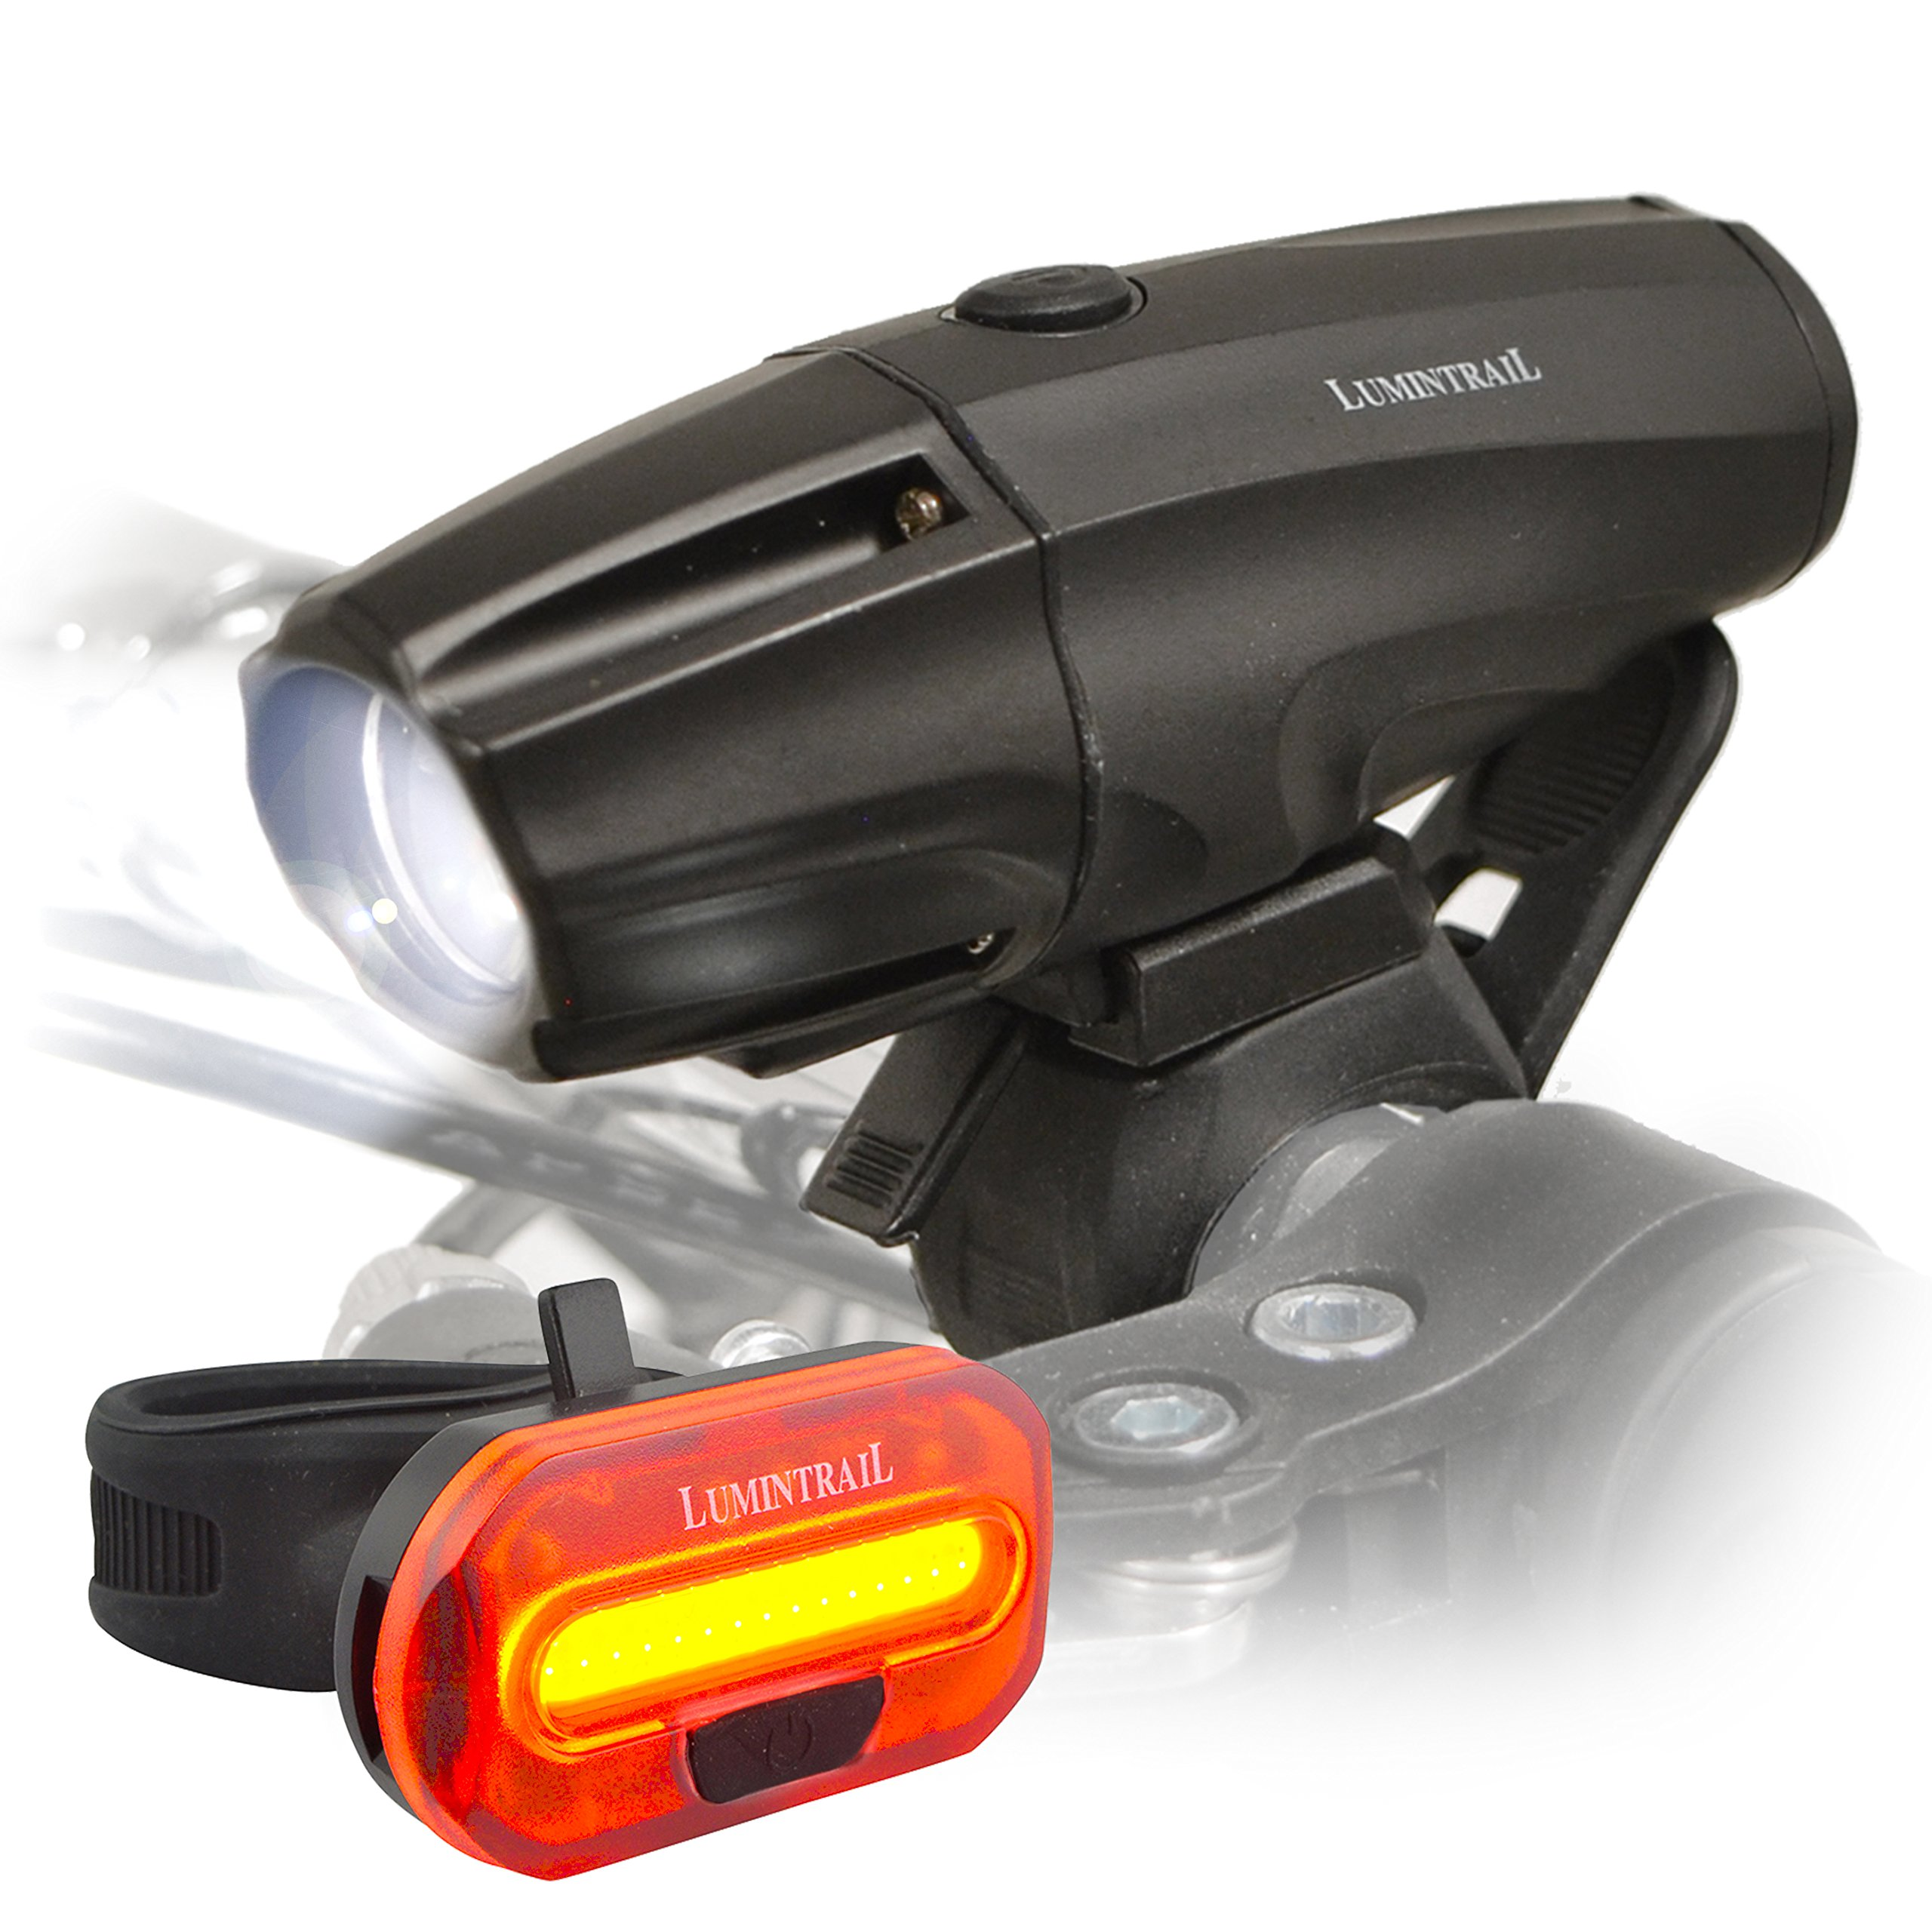 Lumintrail Super Bright USB Rechargeable LED Bike Light Set Headlight Taillight 1000 Lumen Safety Commuter Water Resistant Easy Install & Quick Release by Lumintrail (Image #1)